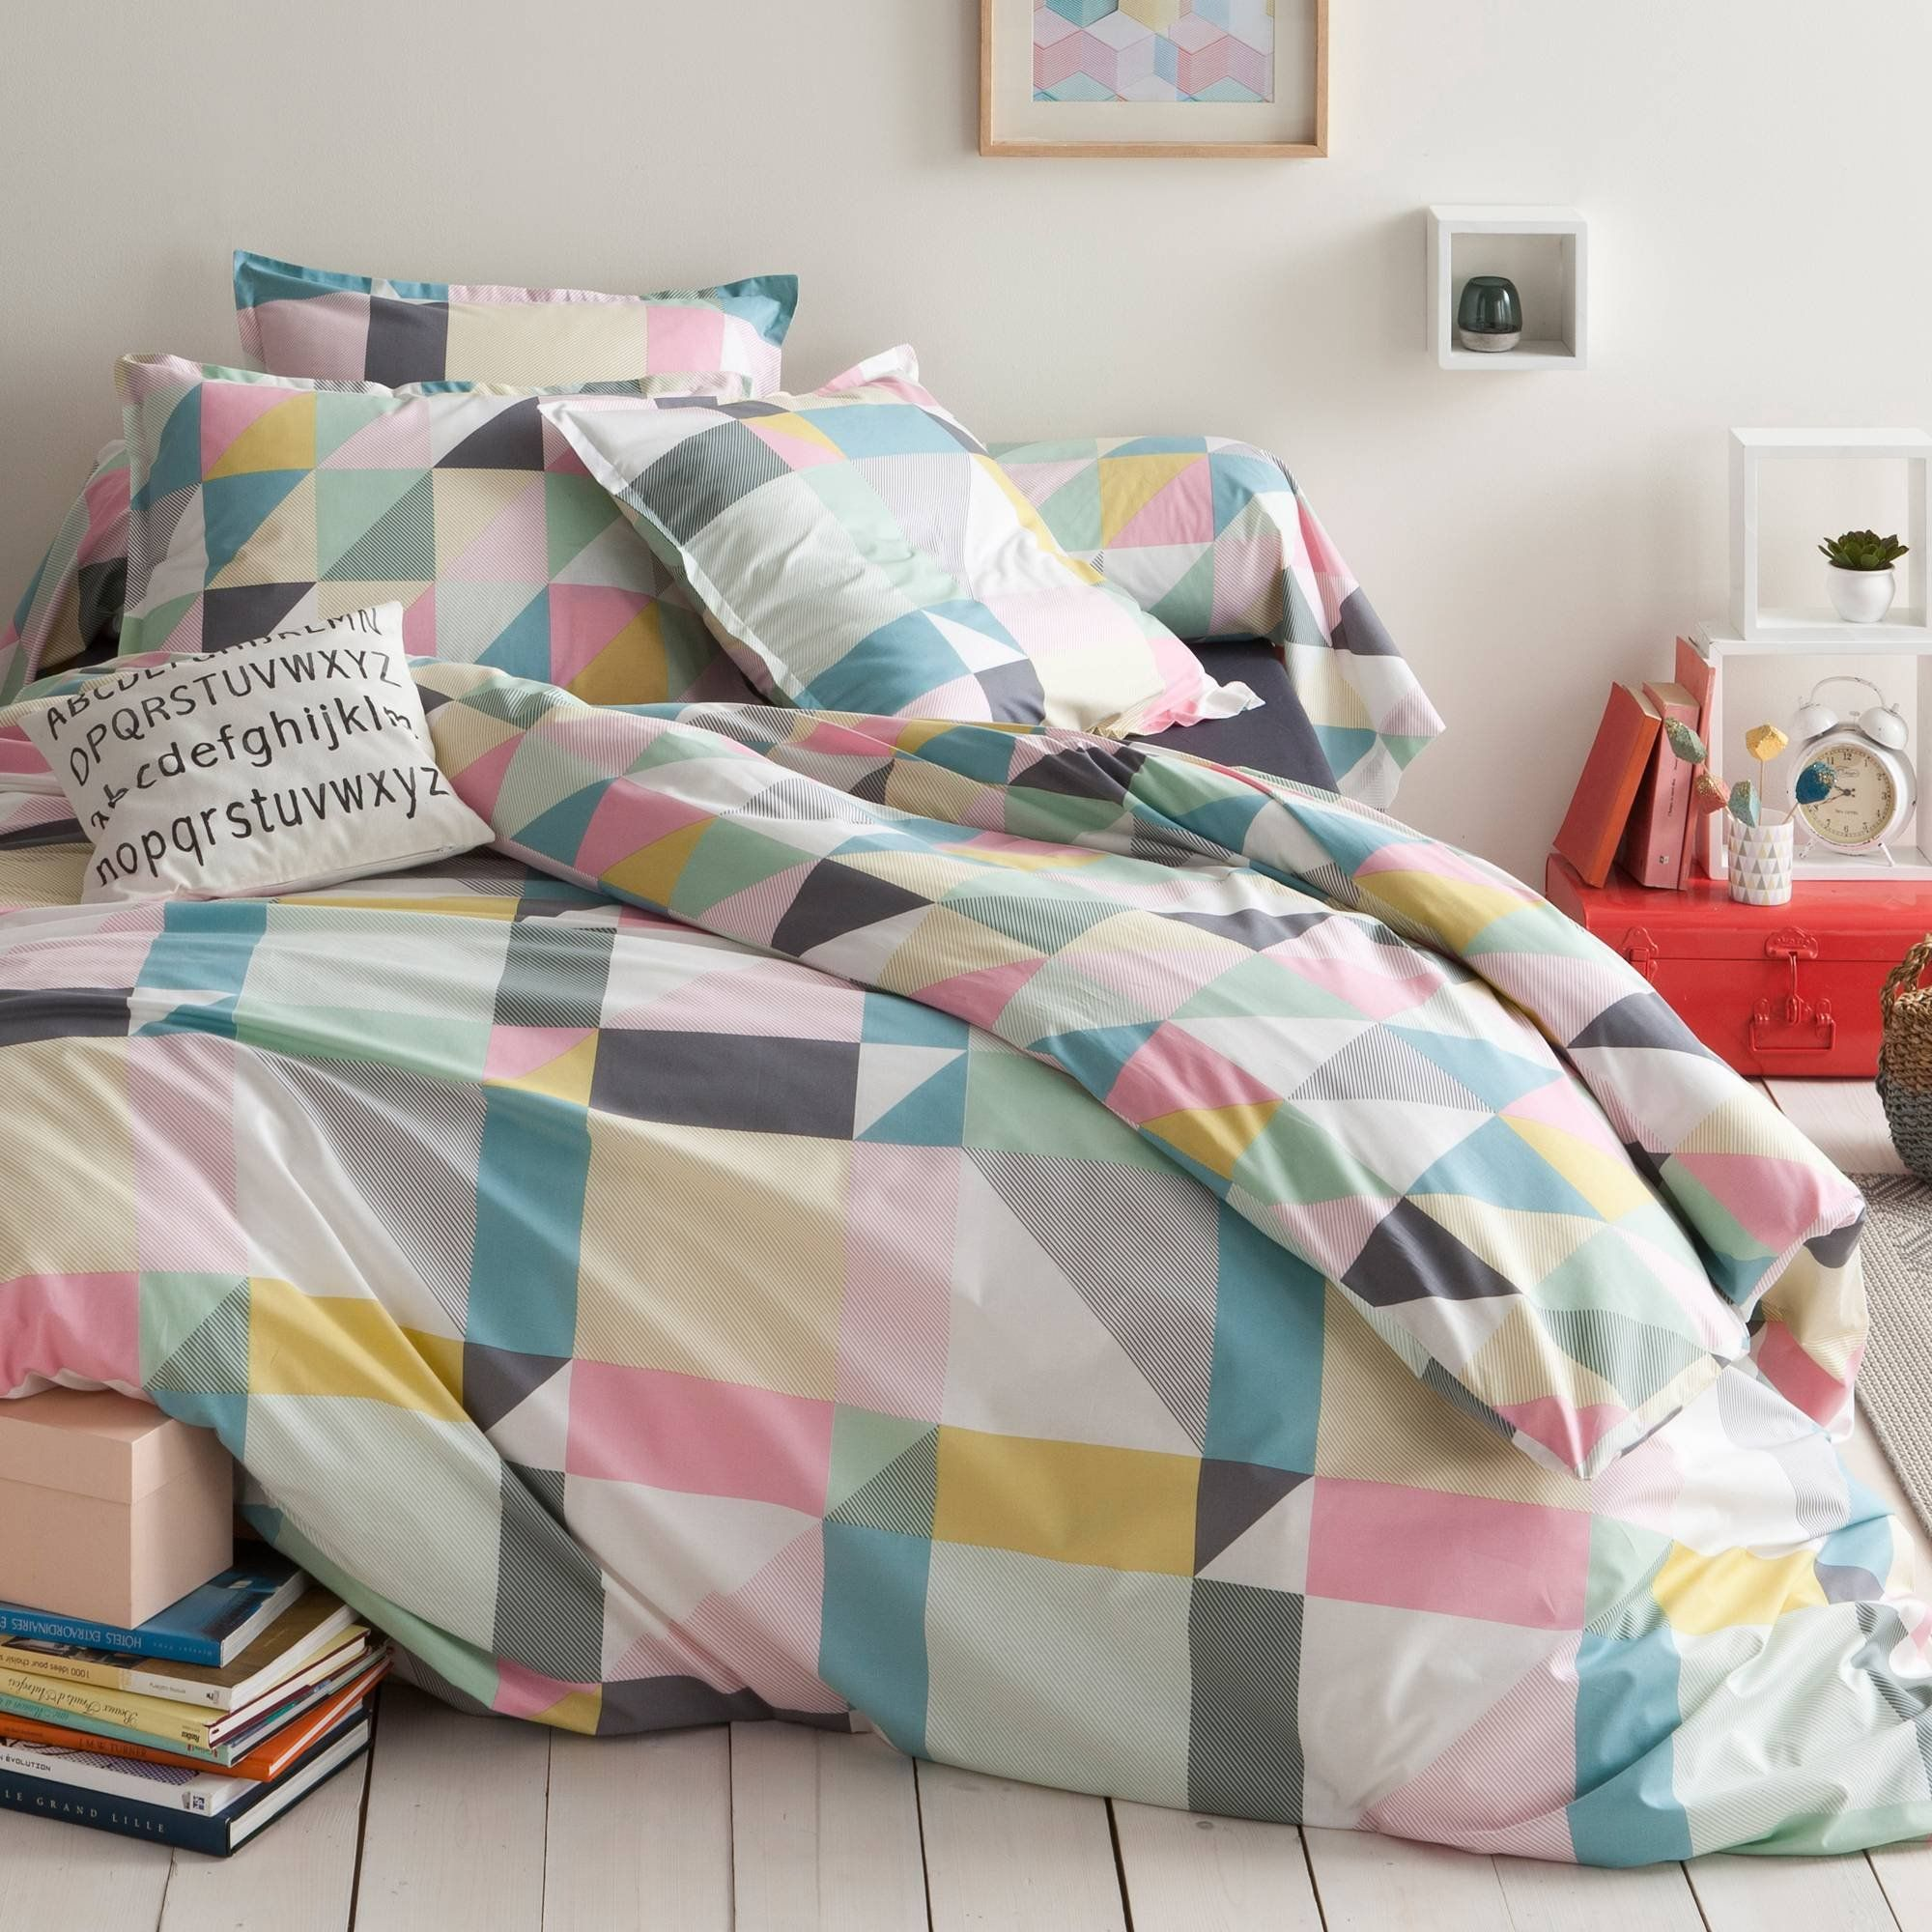 Housse de couette coton imprim triangles modern lofts for Housse de duvet